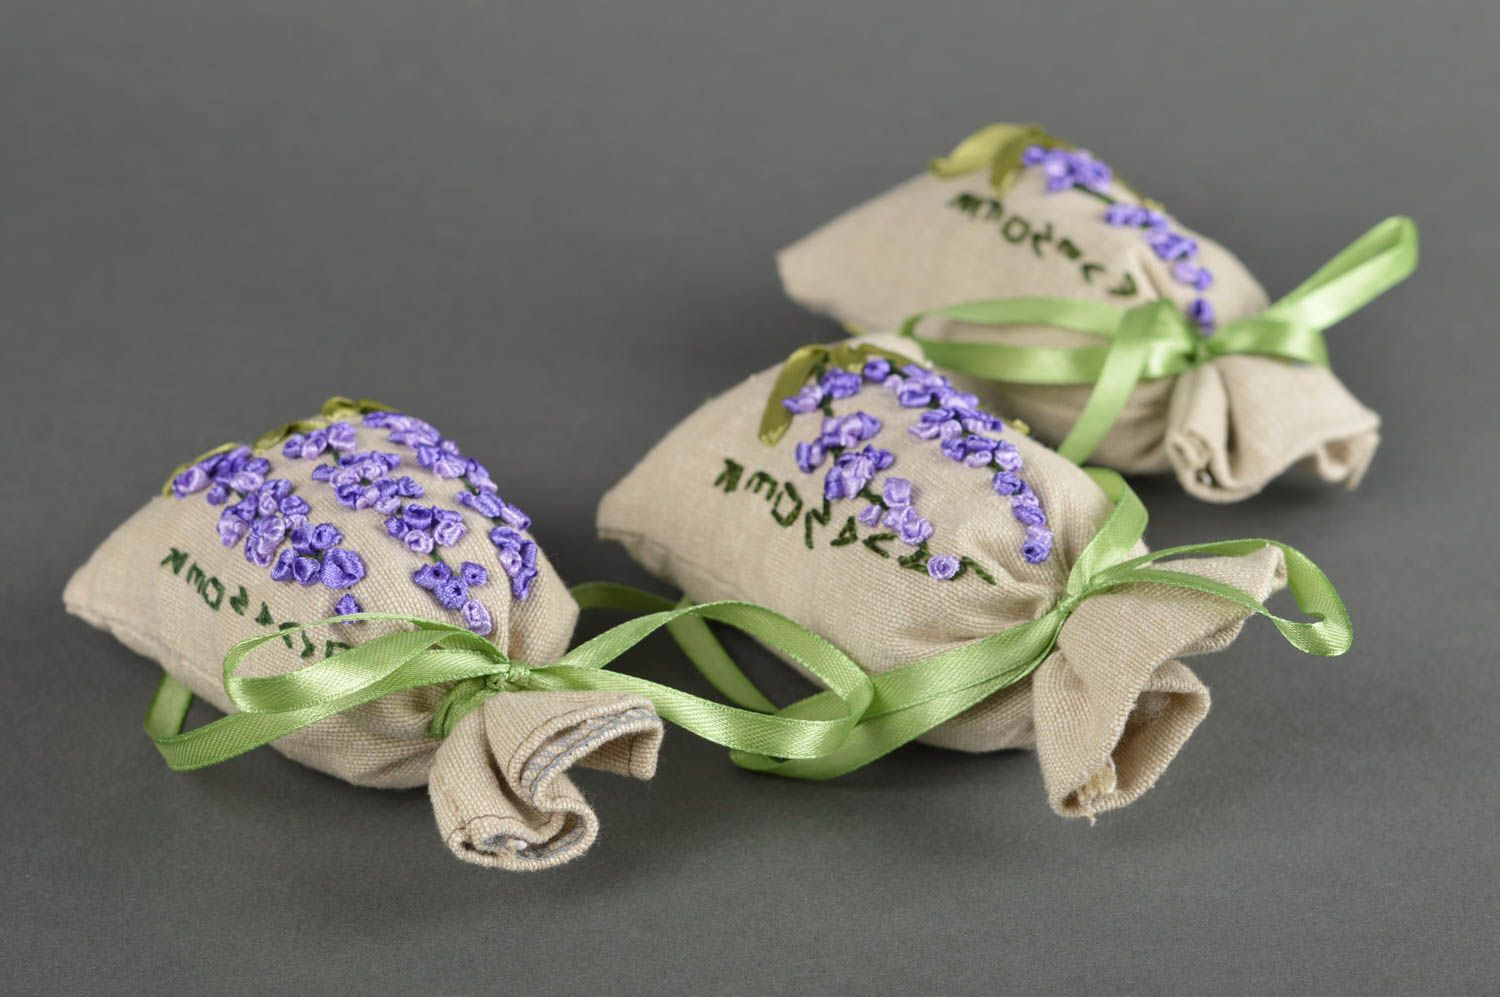 Handmade bags for aromatic sachets bags for gifts decorative use only photo 3